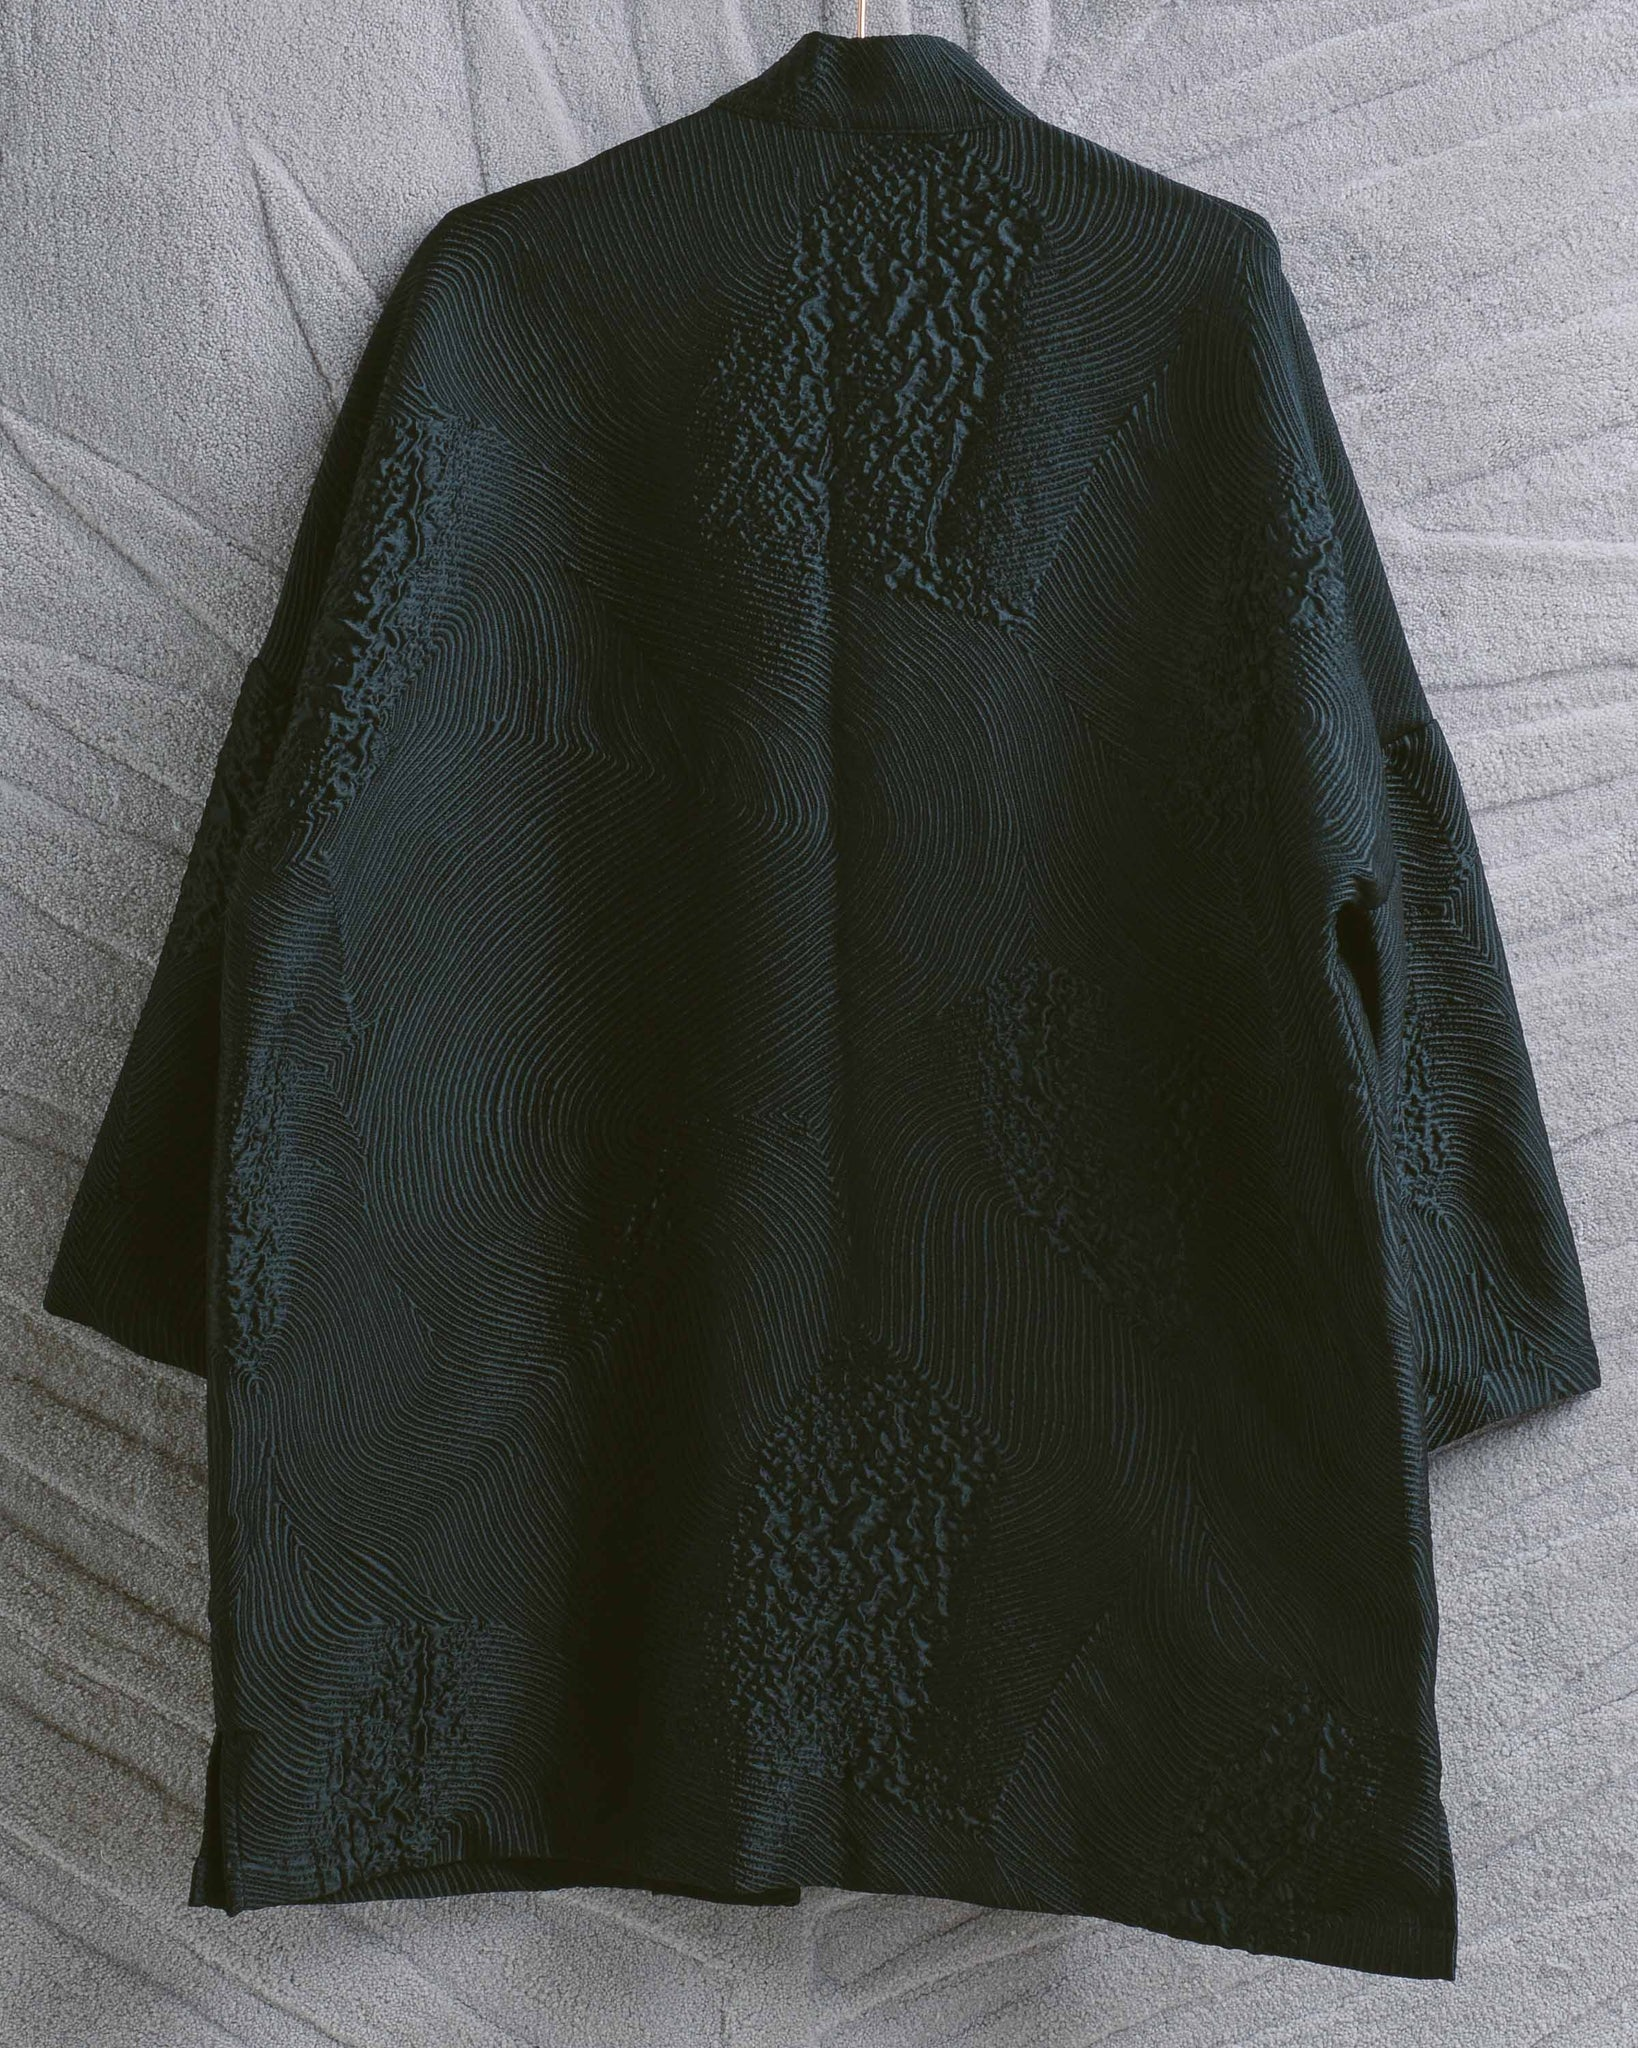 Black Jacquard Range Jacket